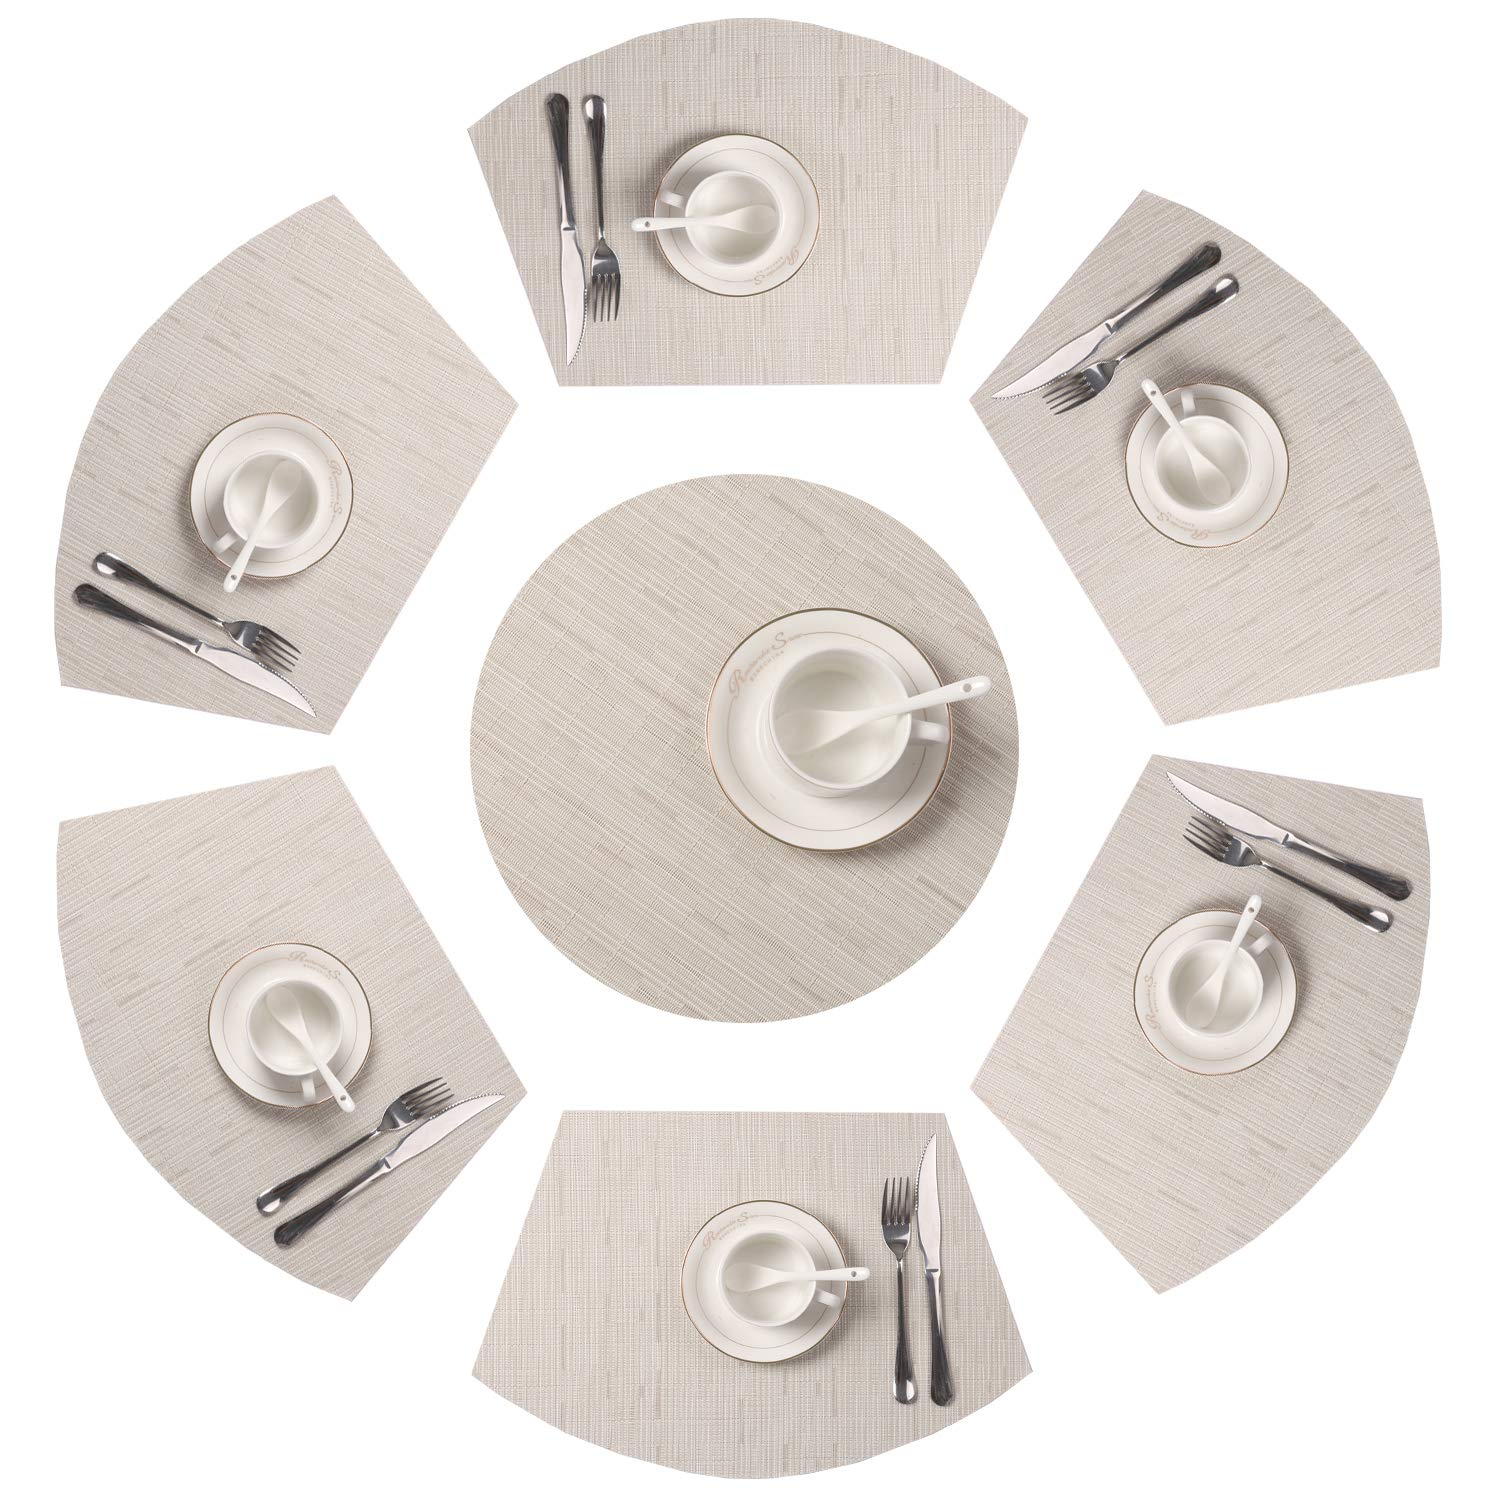 SHACOS Round Table Placemats Set of 7 Wedge Shaped Place Mat with Centerpiece Round Mat PVC Heat Resistant Table Mats Washable (7, Beige)